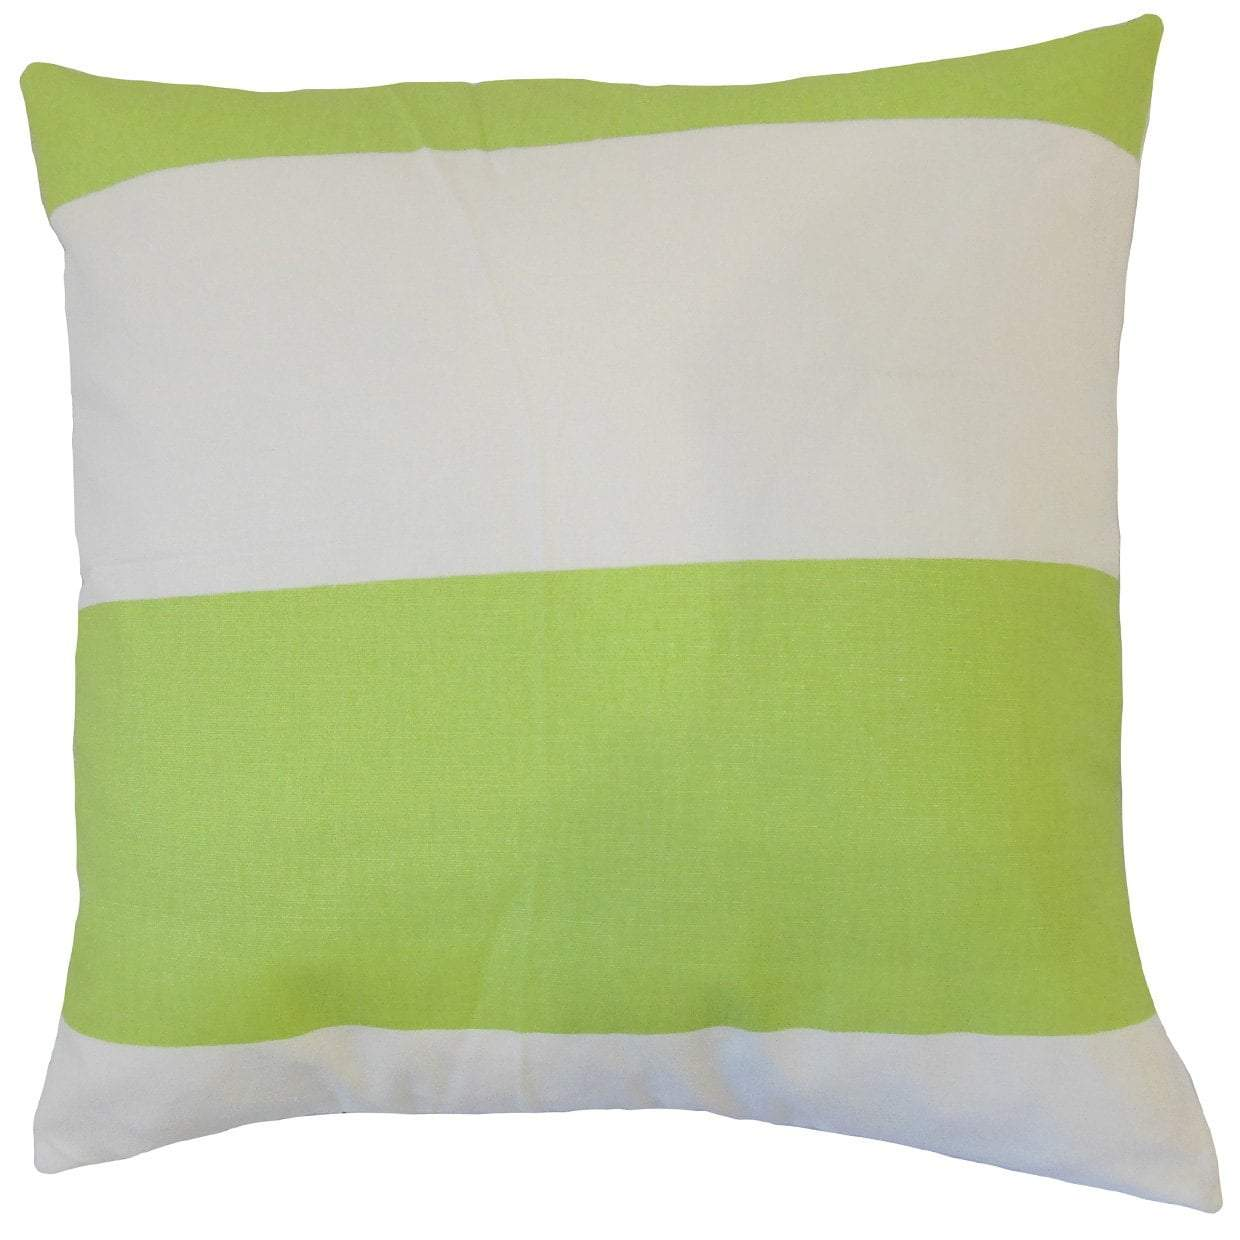 Green Cotton Striped Contemporary Throw Pillow Cover